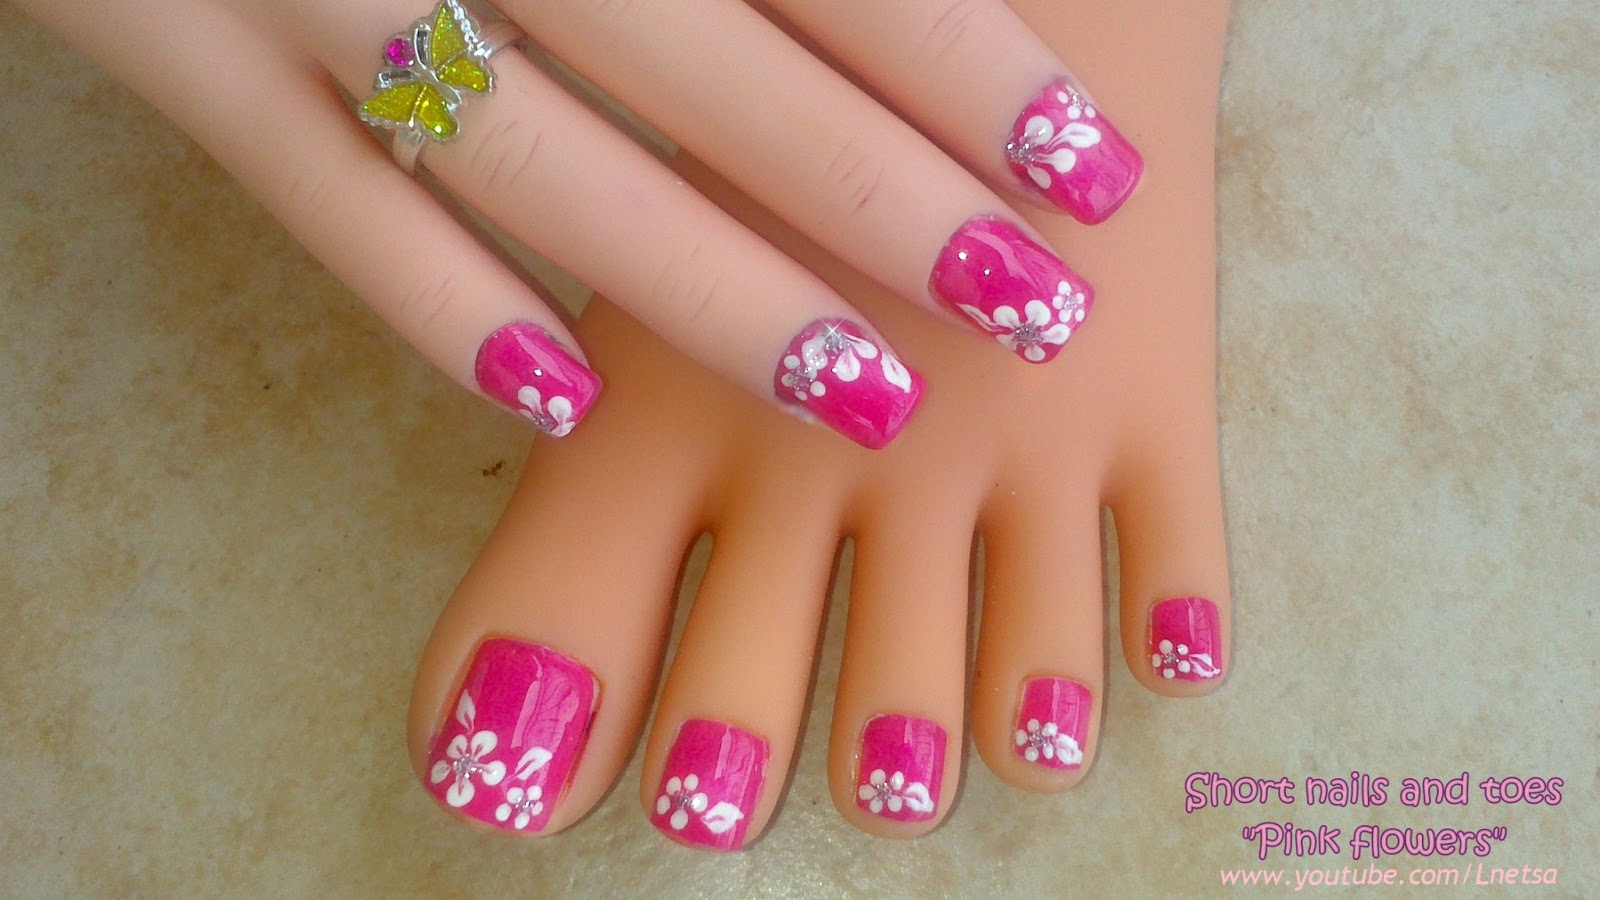 Lnetsa \'s nailart: Toe nail design + short nails version \